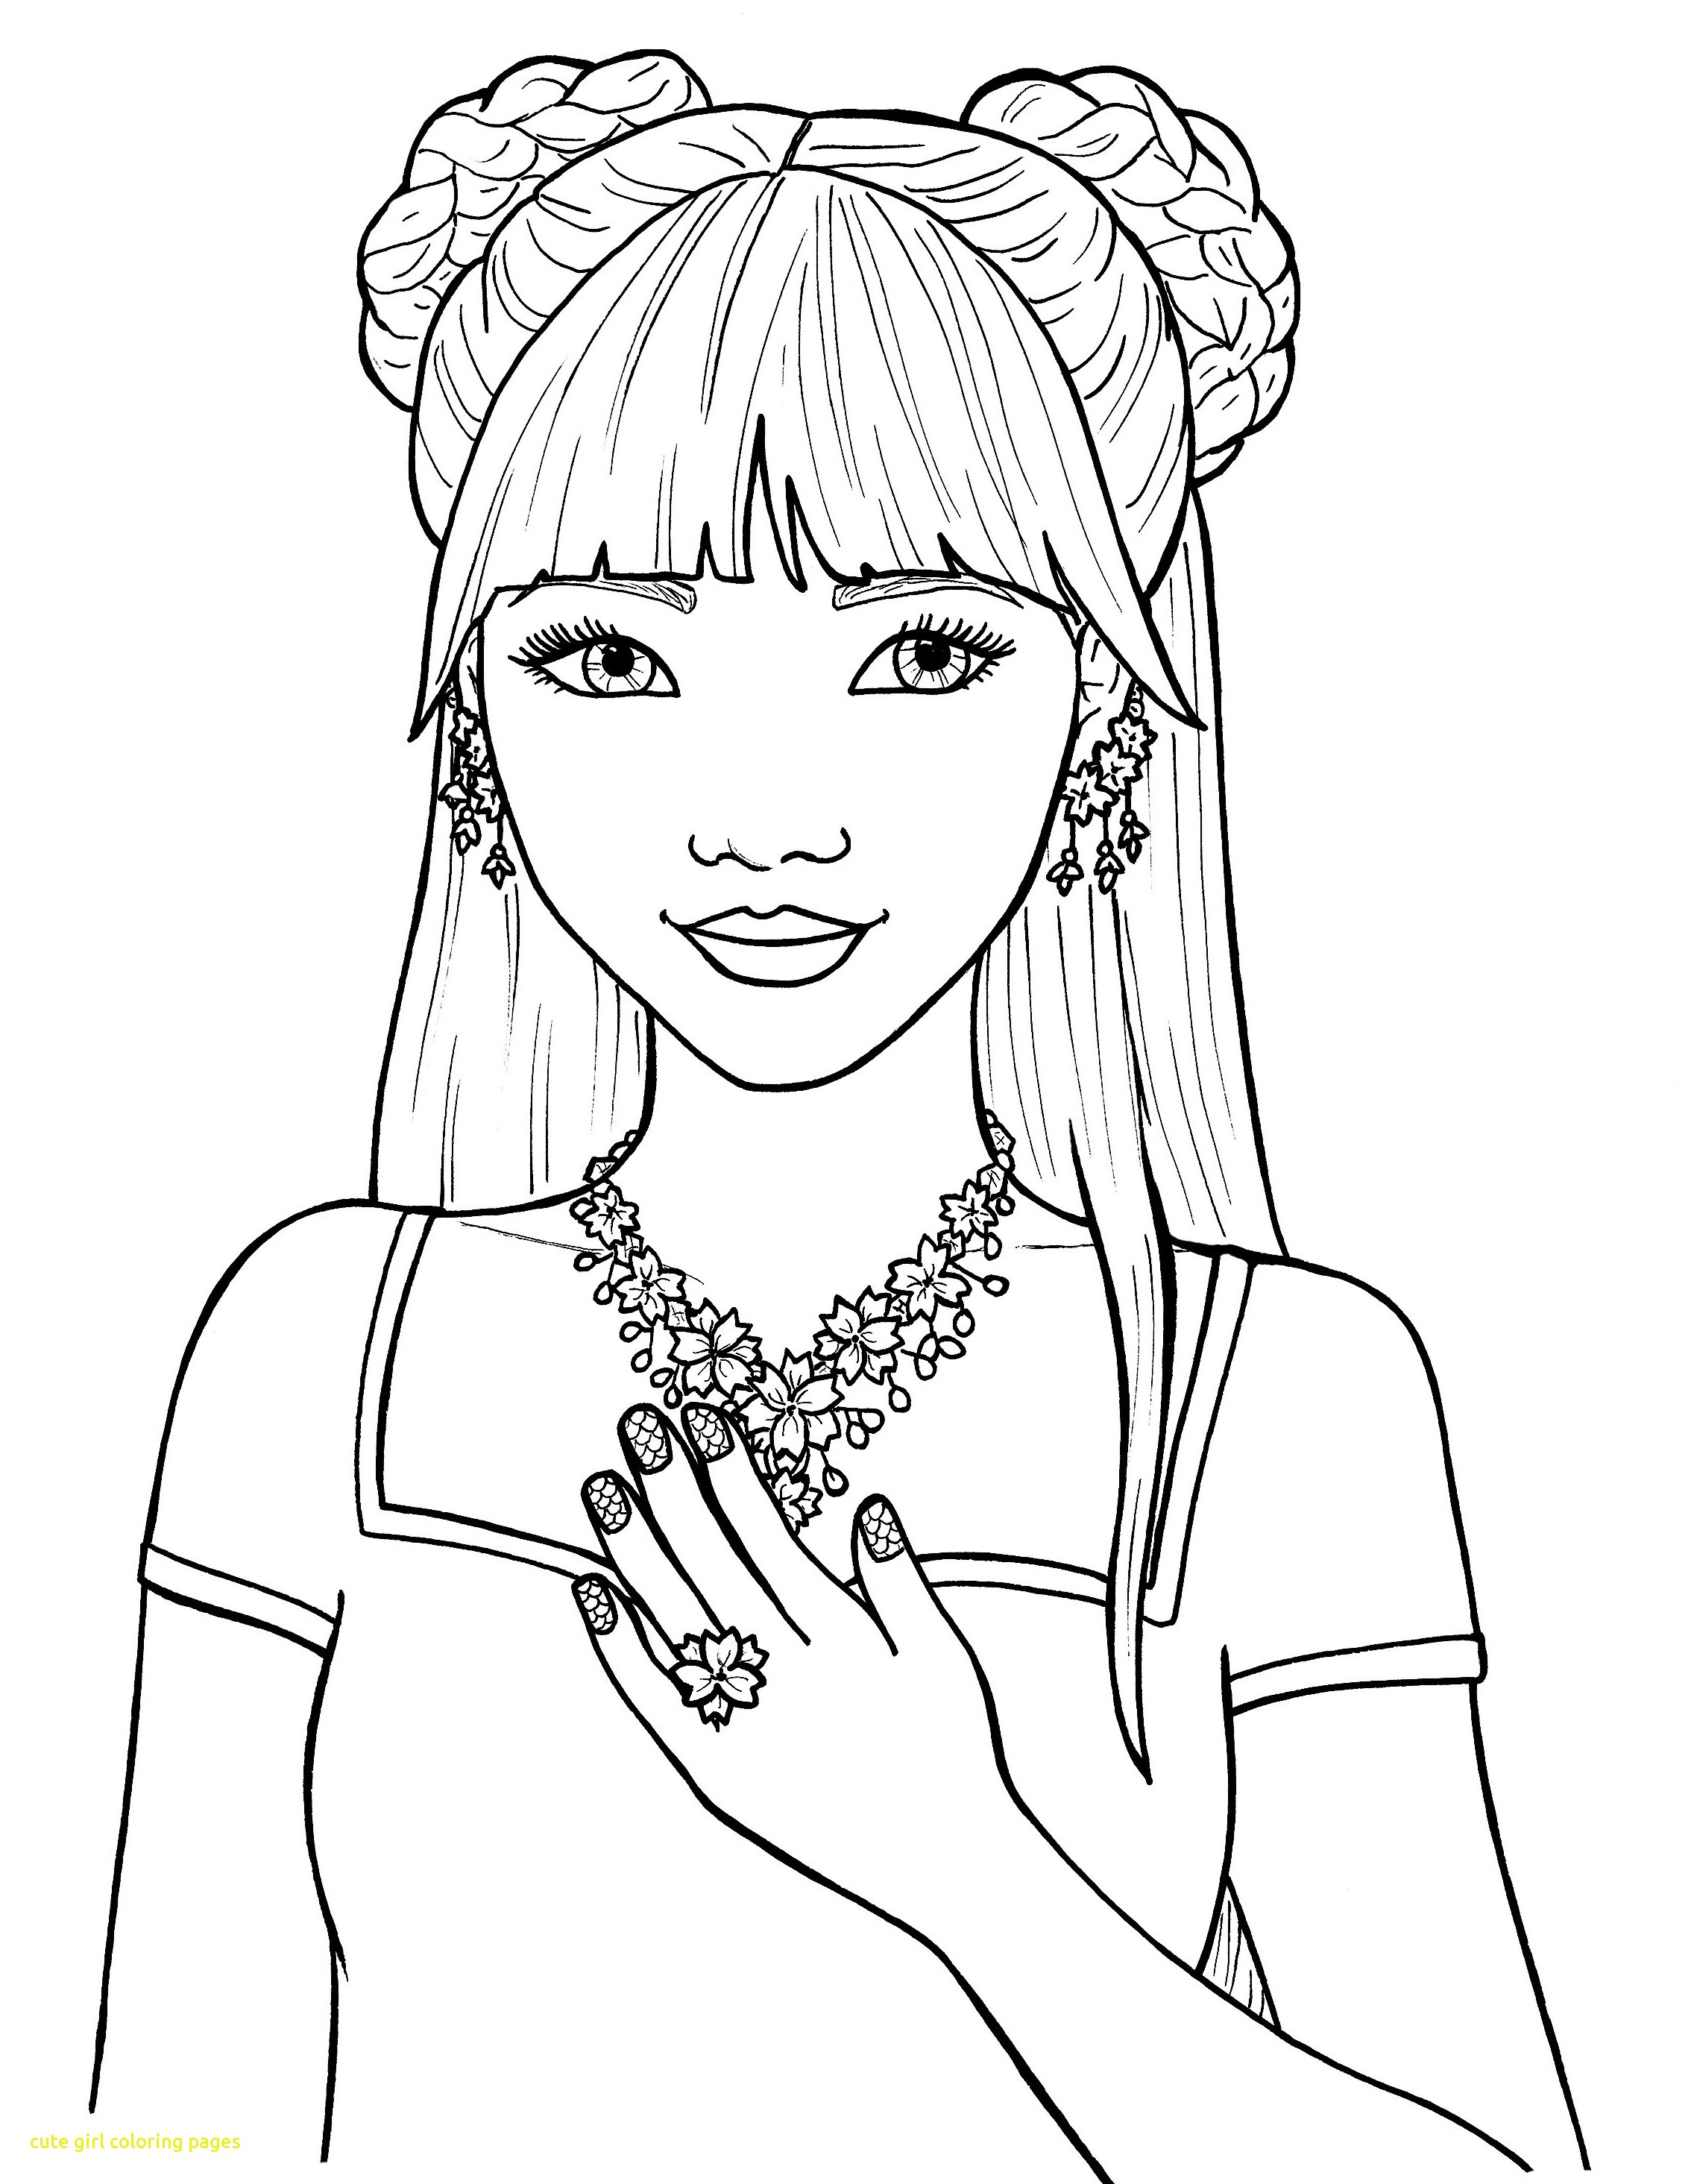 coloring picture people coloring pages for girls best coloring pages for kids picture people coloring